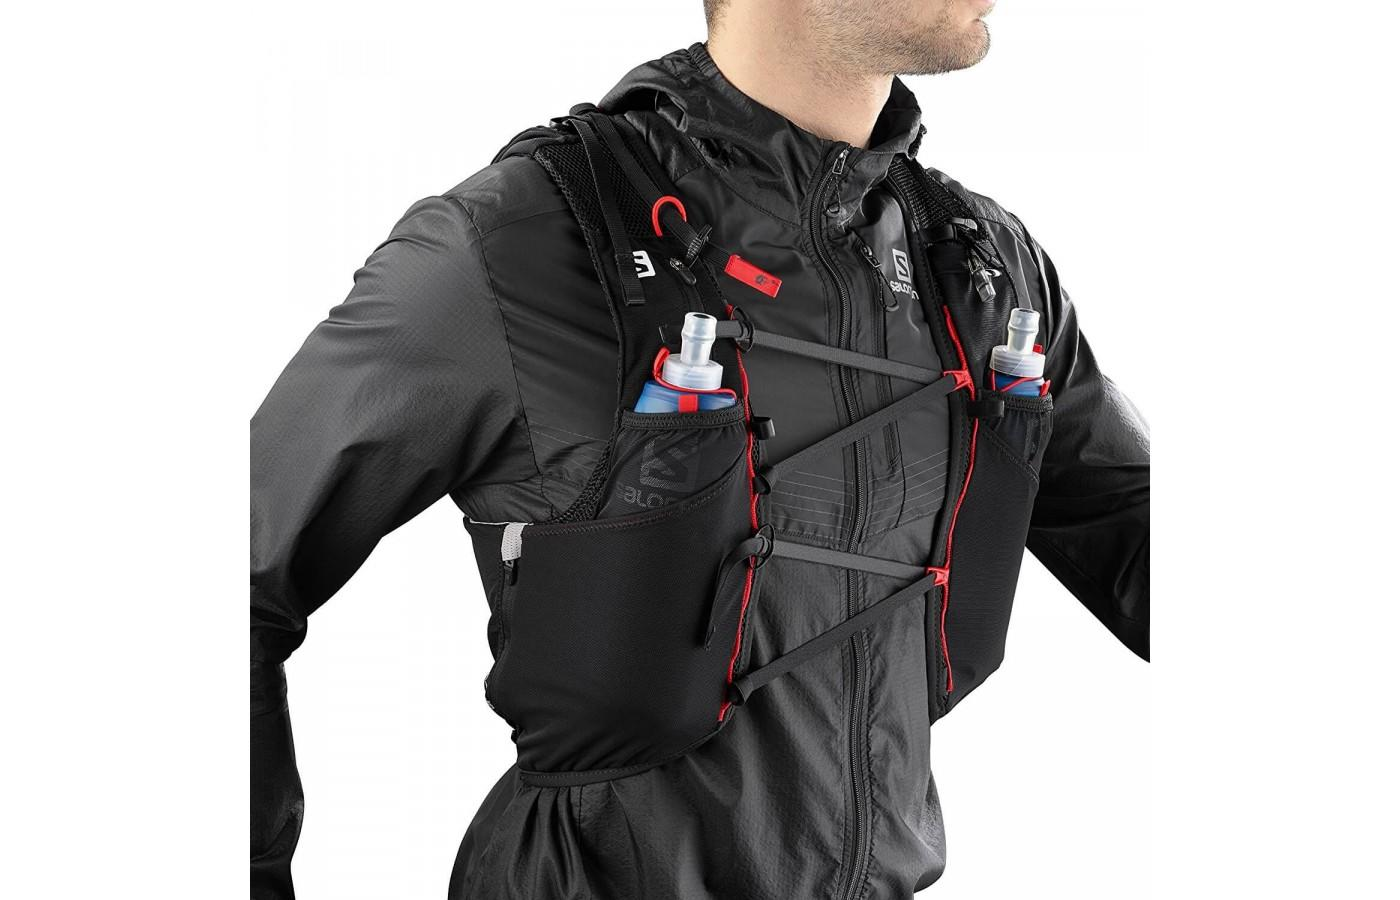 The criss cross bungee cords create a customization fit